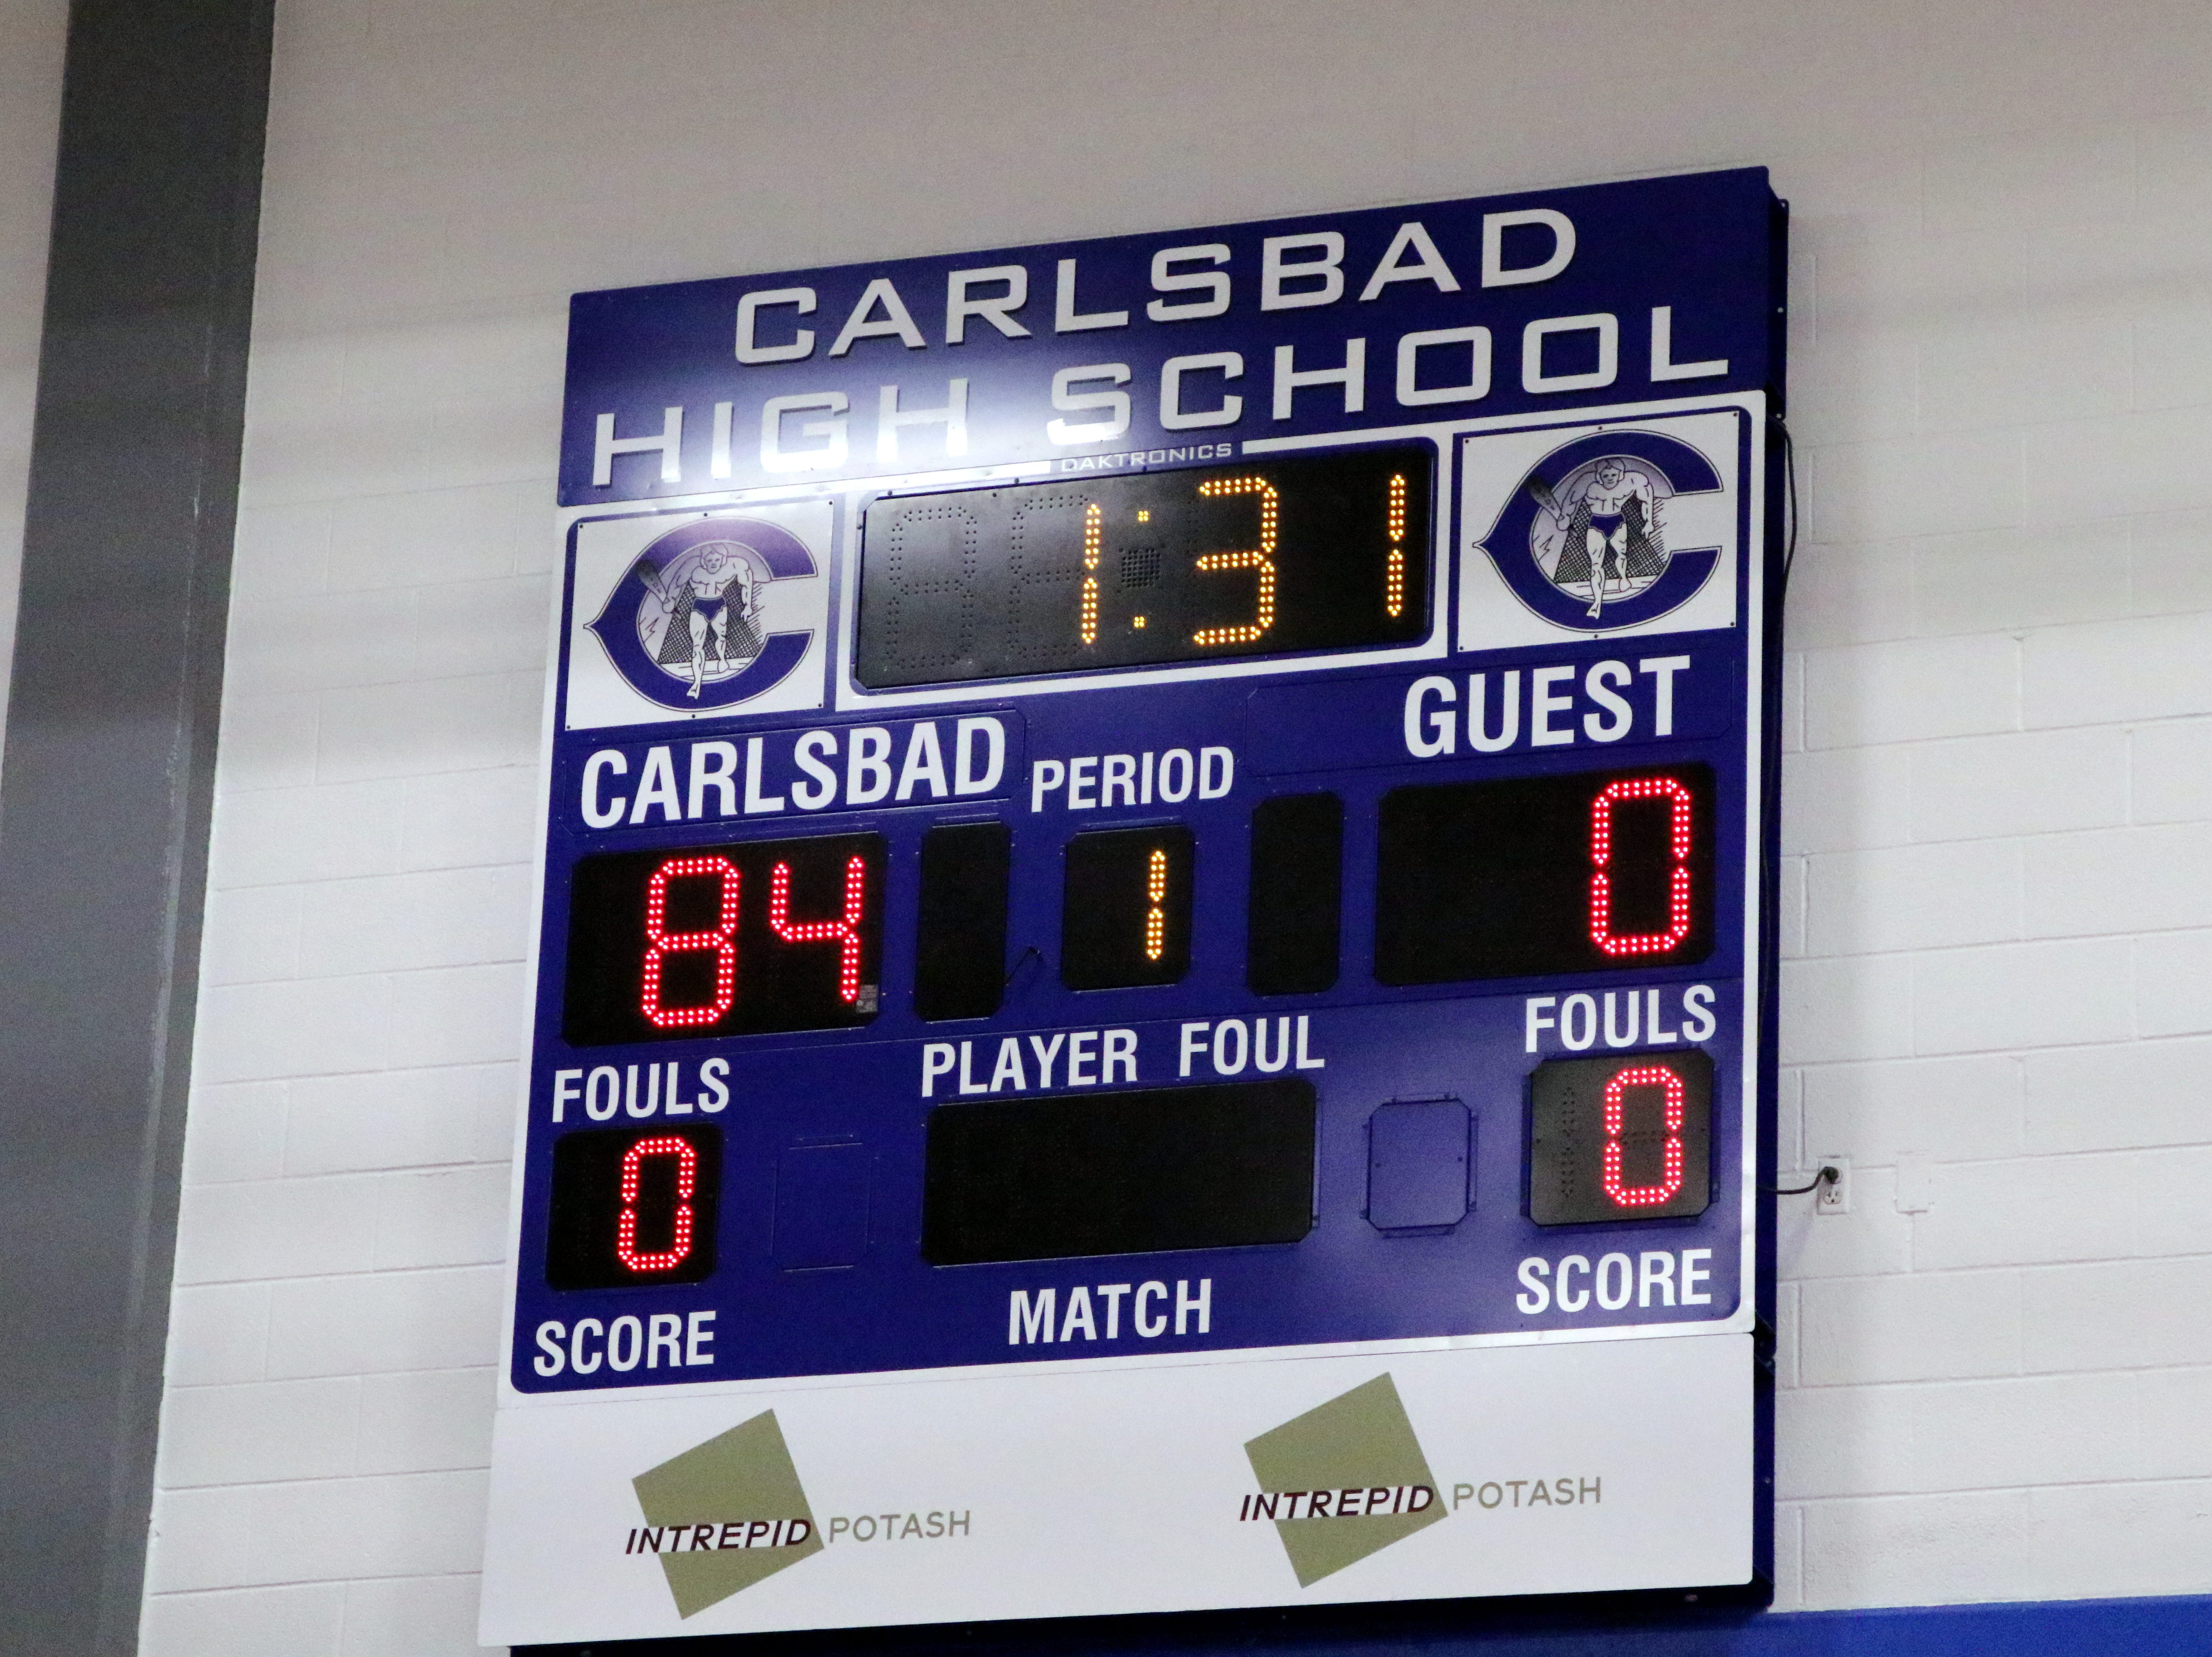 Carlsbad completed a clean sweep of Alamogordo on Feb. 2, 2019, scoring 84 points and tying the school record for maximum points allowed.